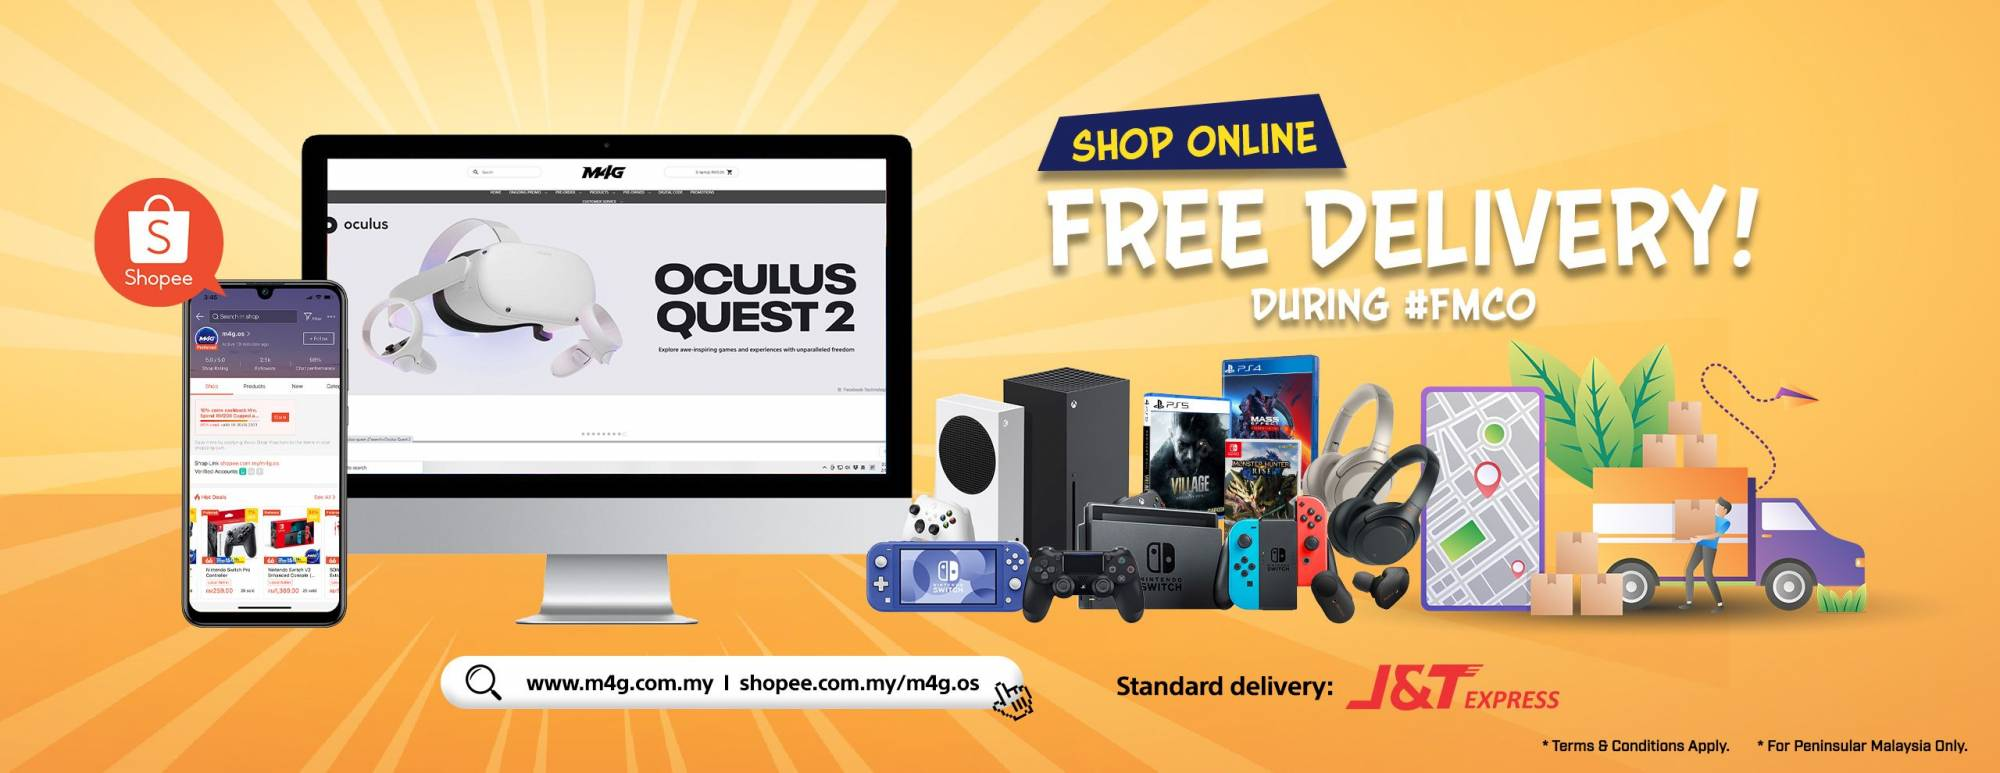 Free delivery FMCO